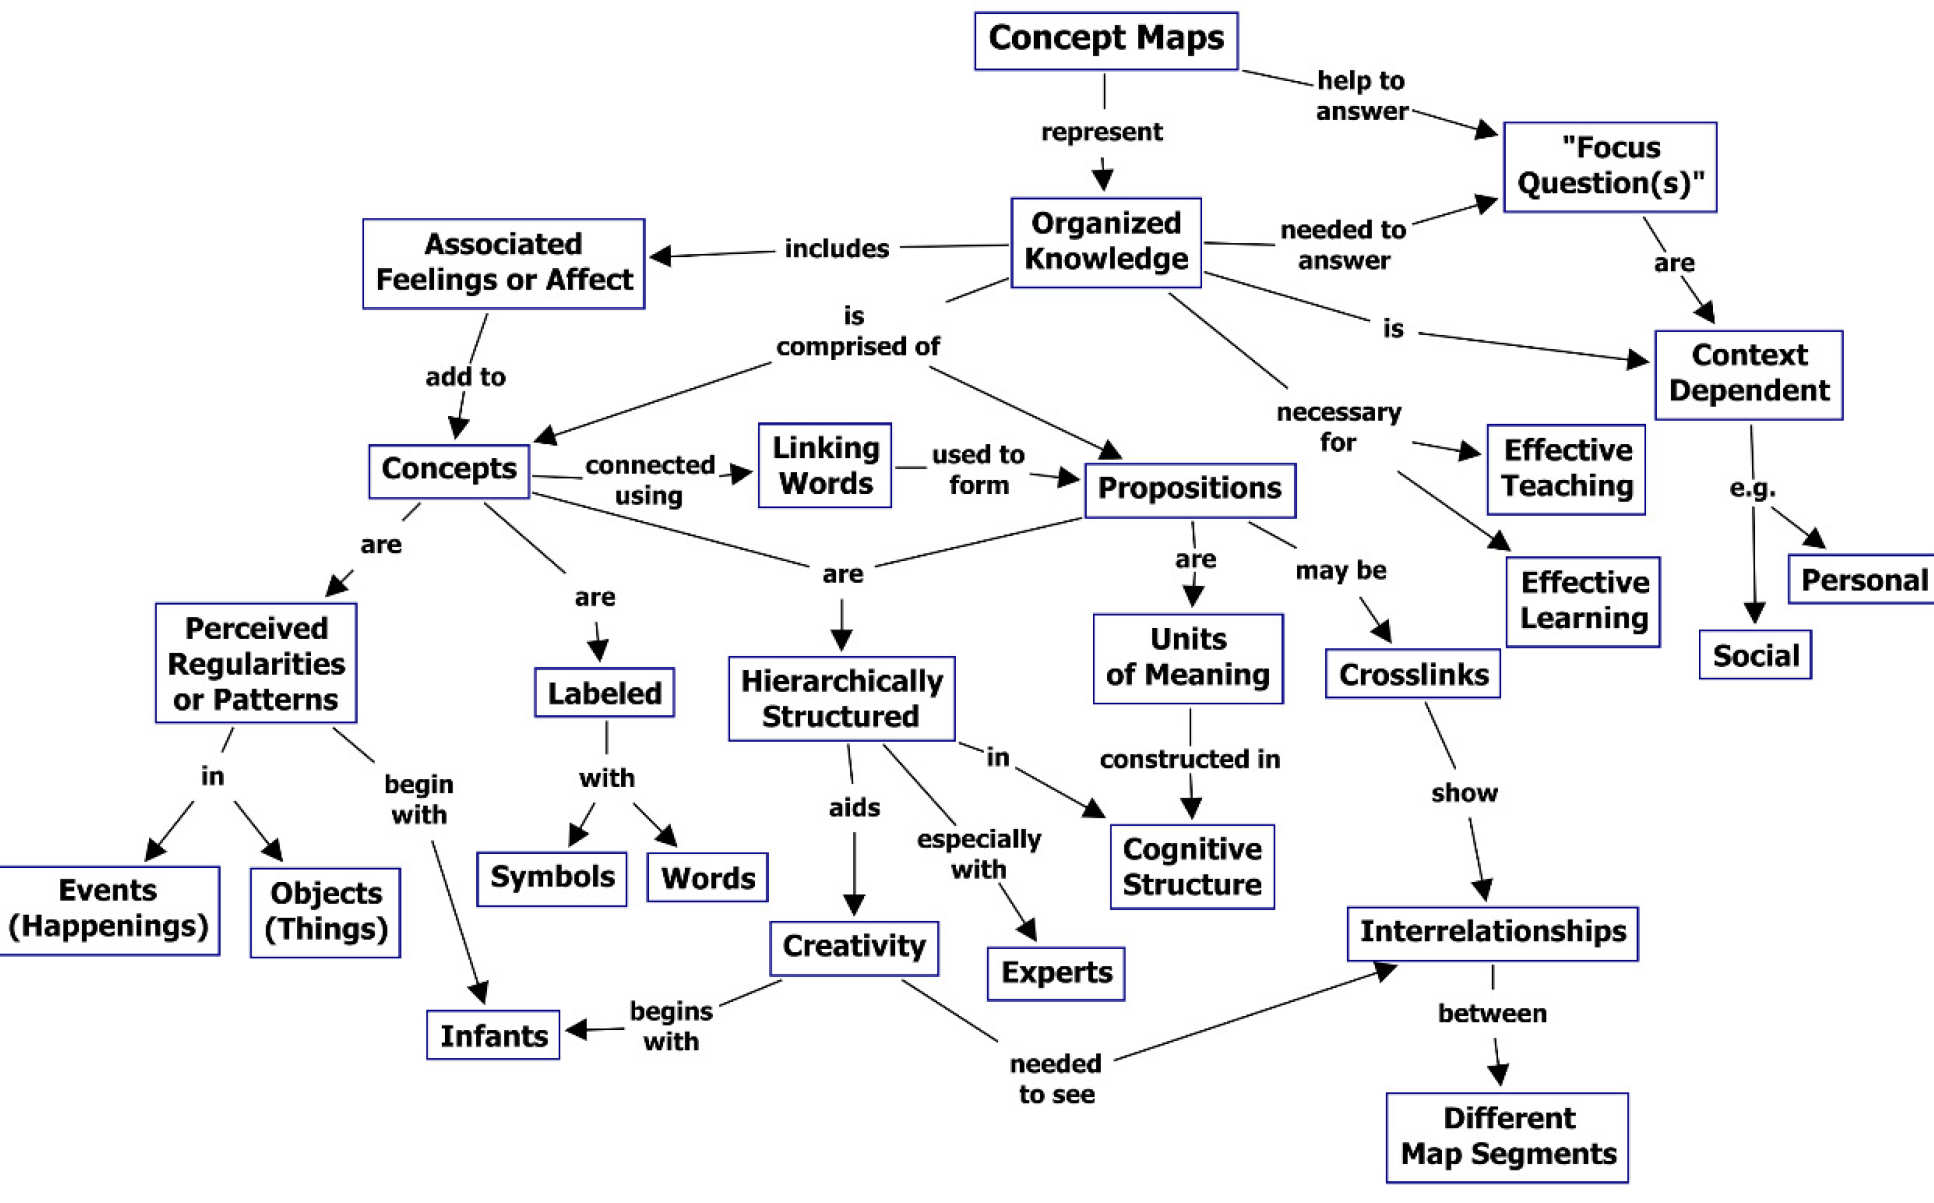 Example concept map